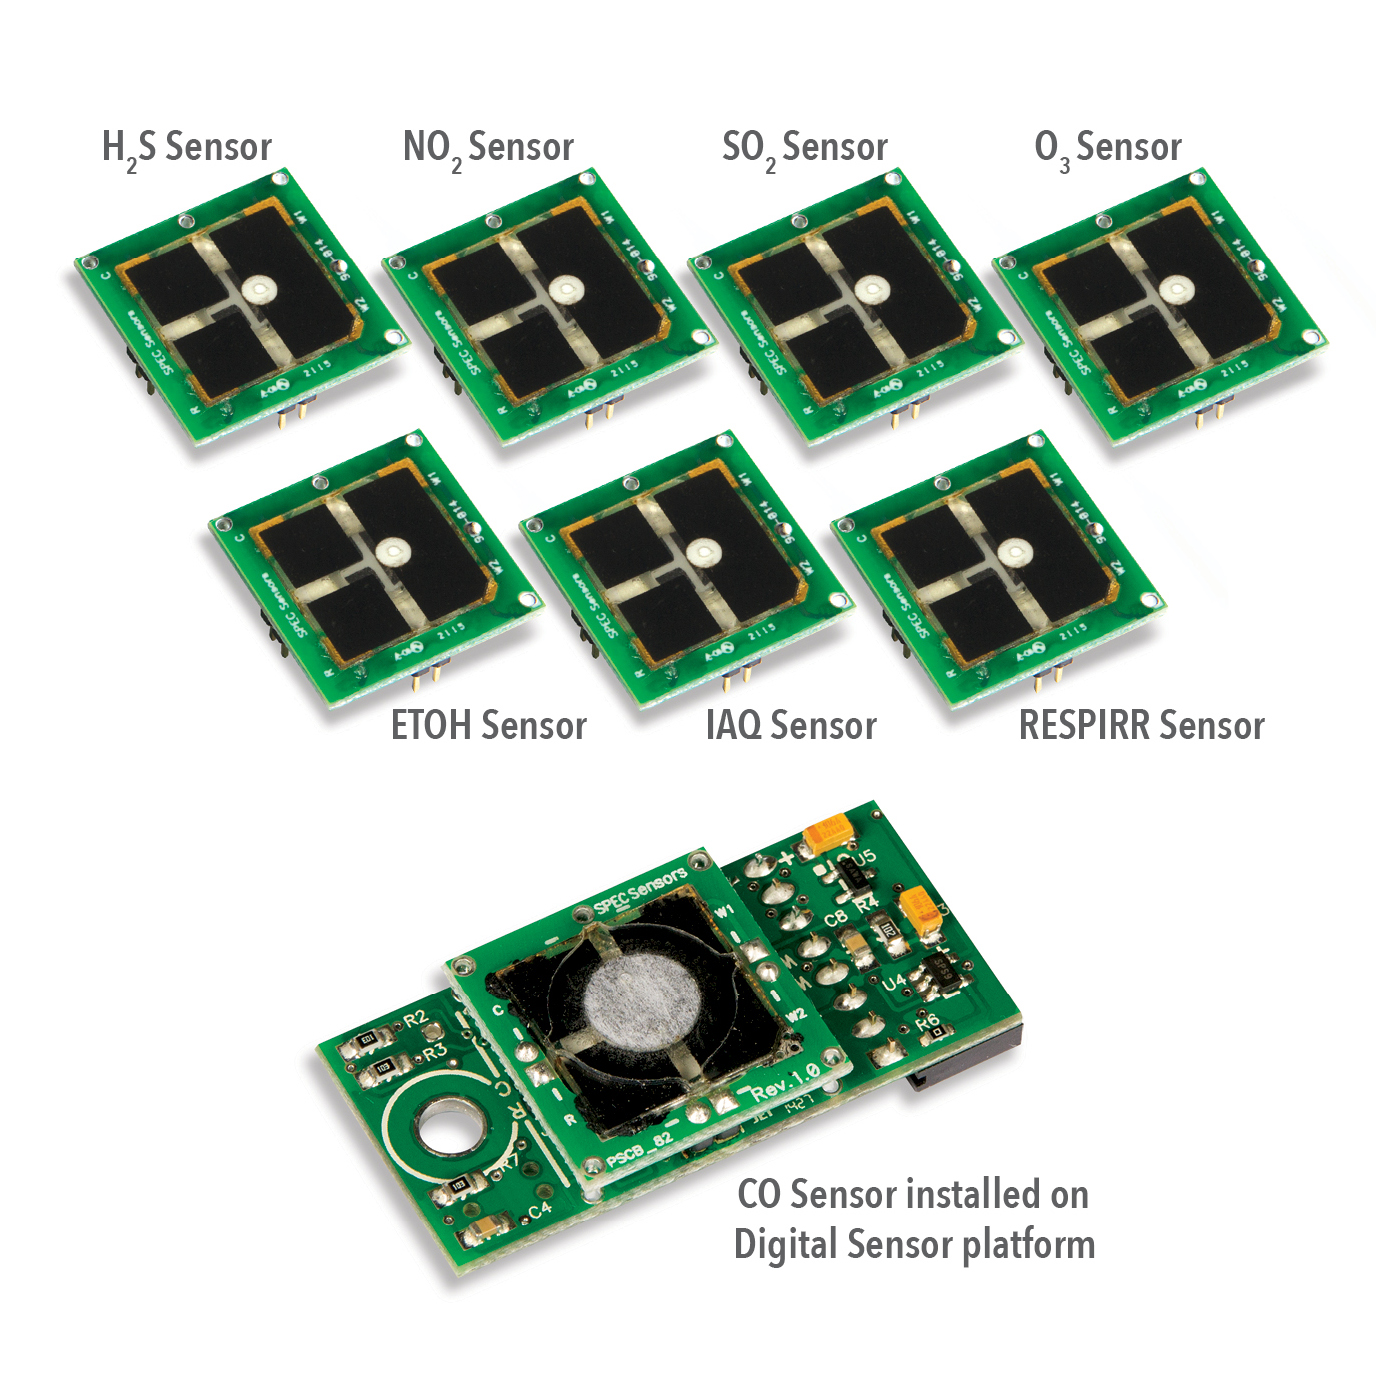 Spec Sensors has released on open-source digital gas sensor developer kit that is said to allow OEMs to quickly integrate gas sensing into their application(s). The company's SPEC Sensors<FONT SIZE=1><SUP>TM</SUP></FONT> are small (low profile) high-performance electrochemical gas sensors available at mass market volumes and prices. Photo courtesy of Spec Sensors.